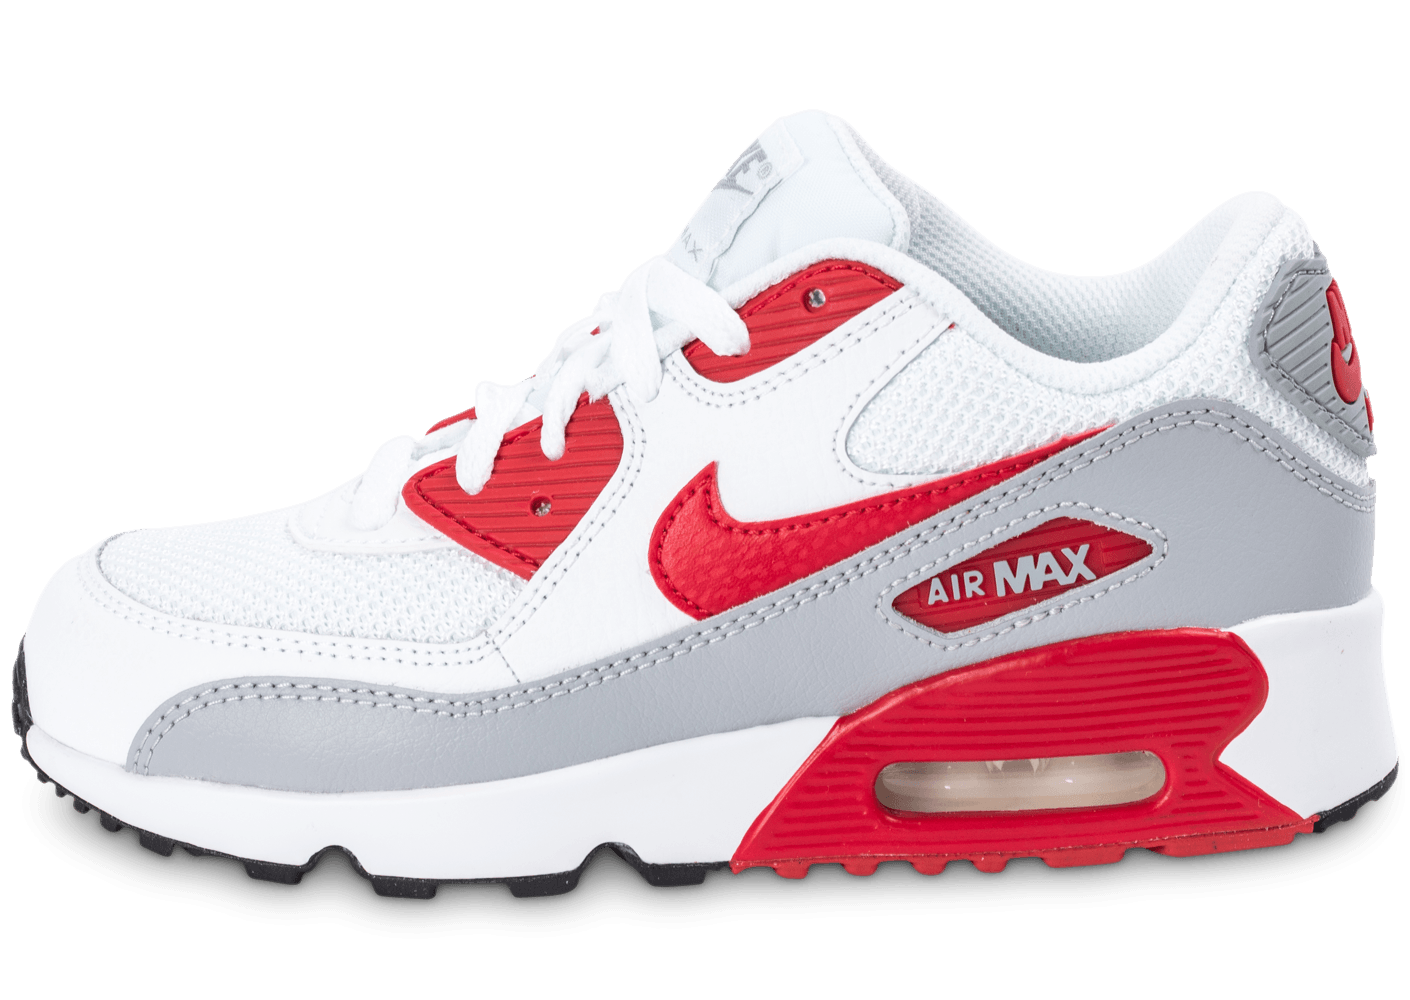 premium selection dfd37 7a65d air max 90 blanche et rouge